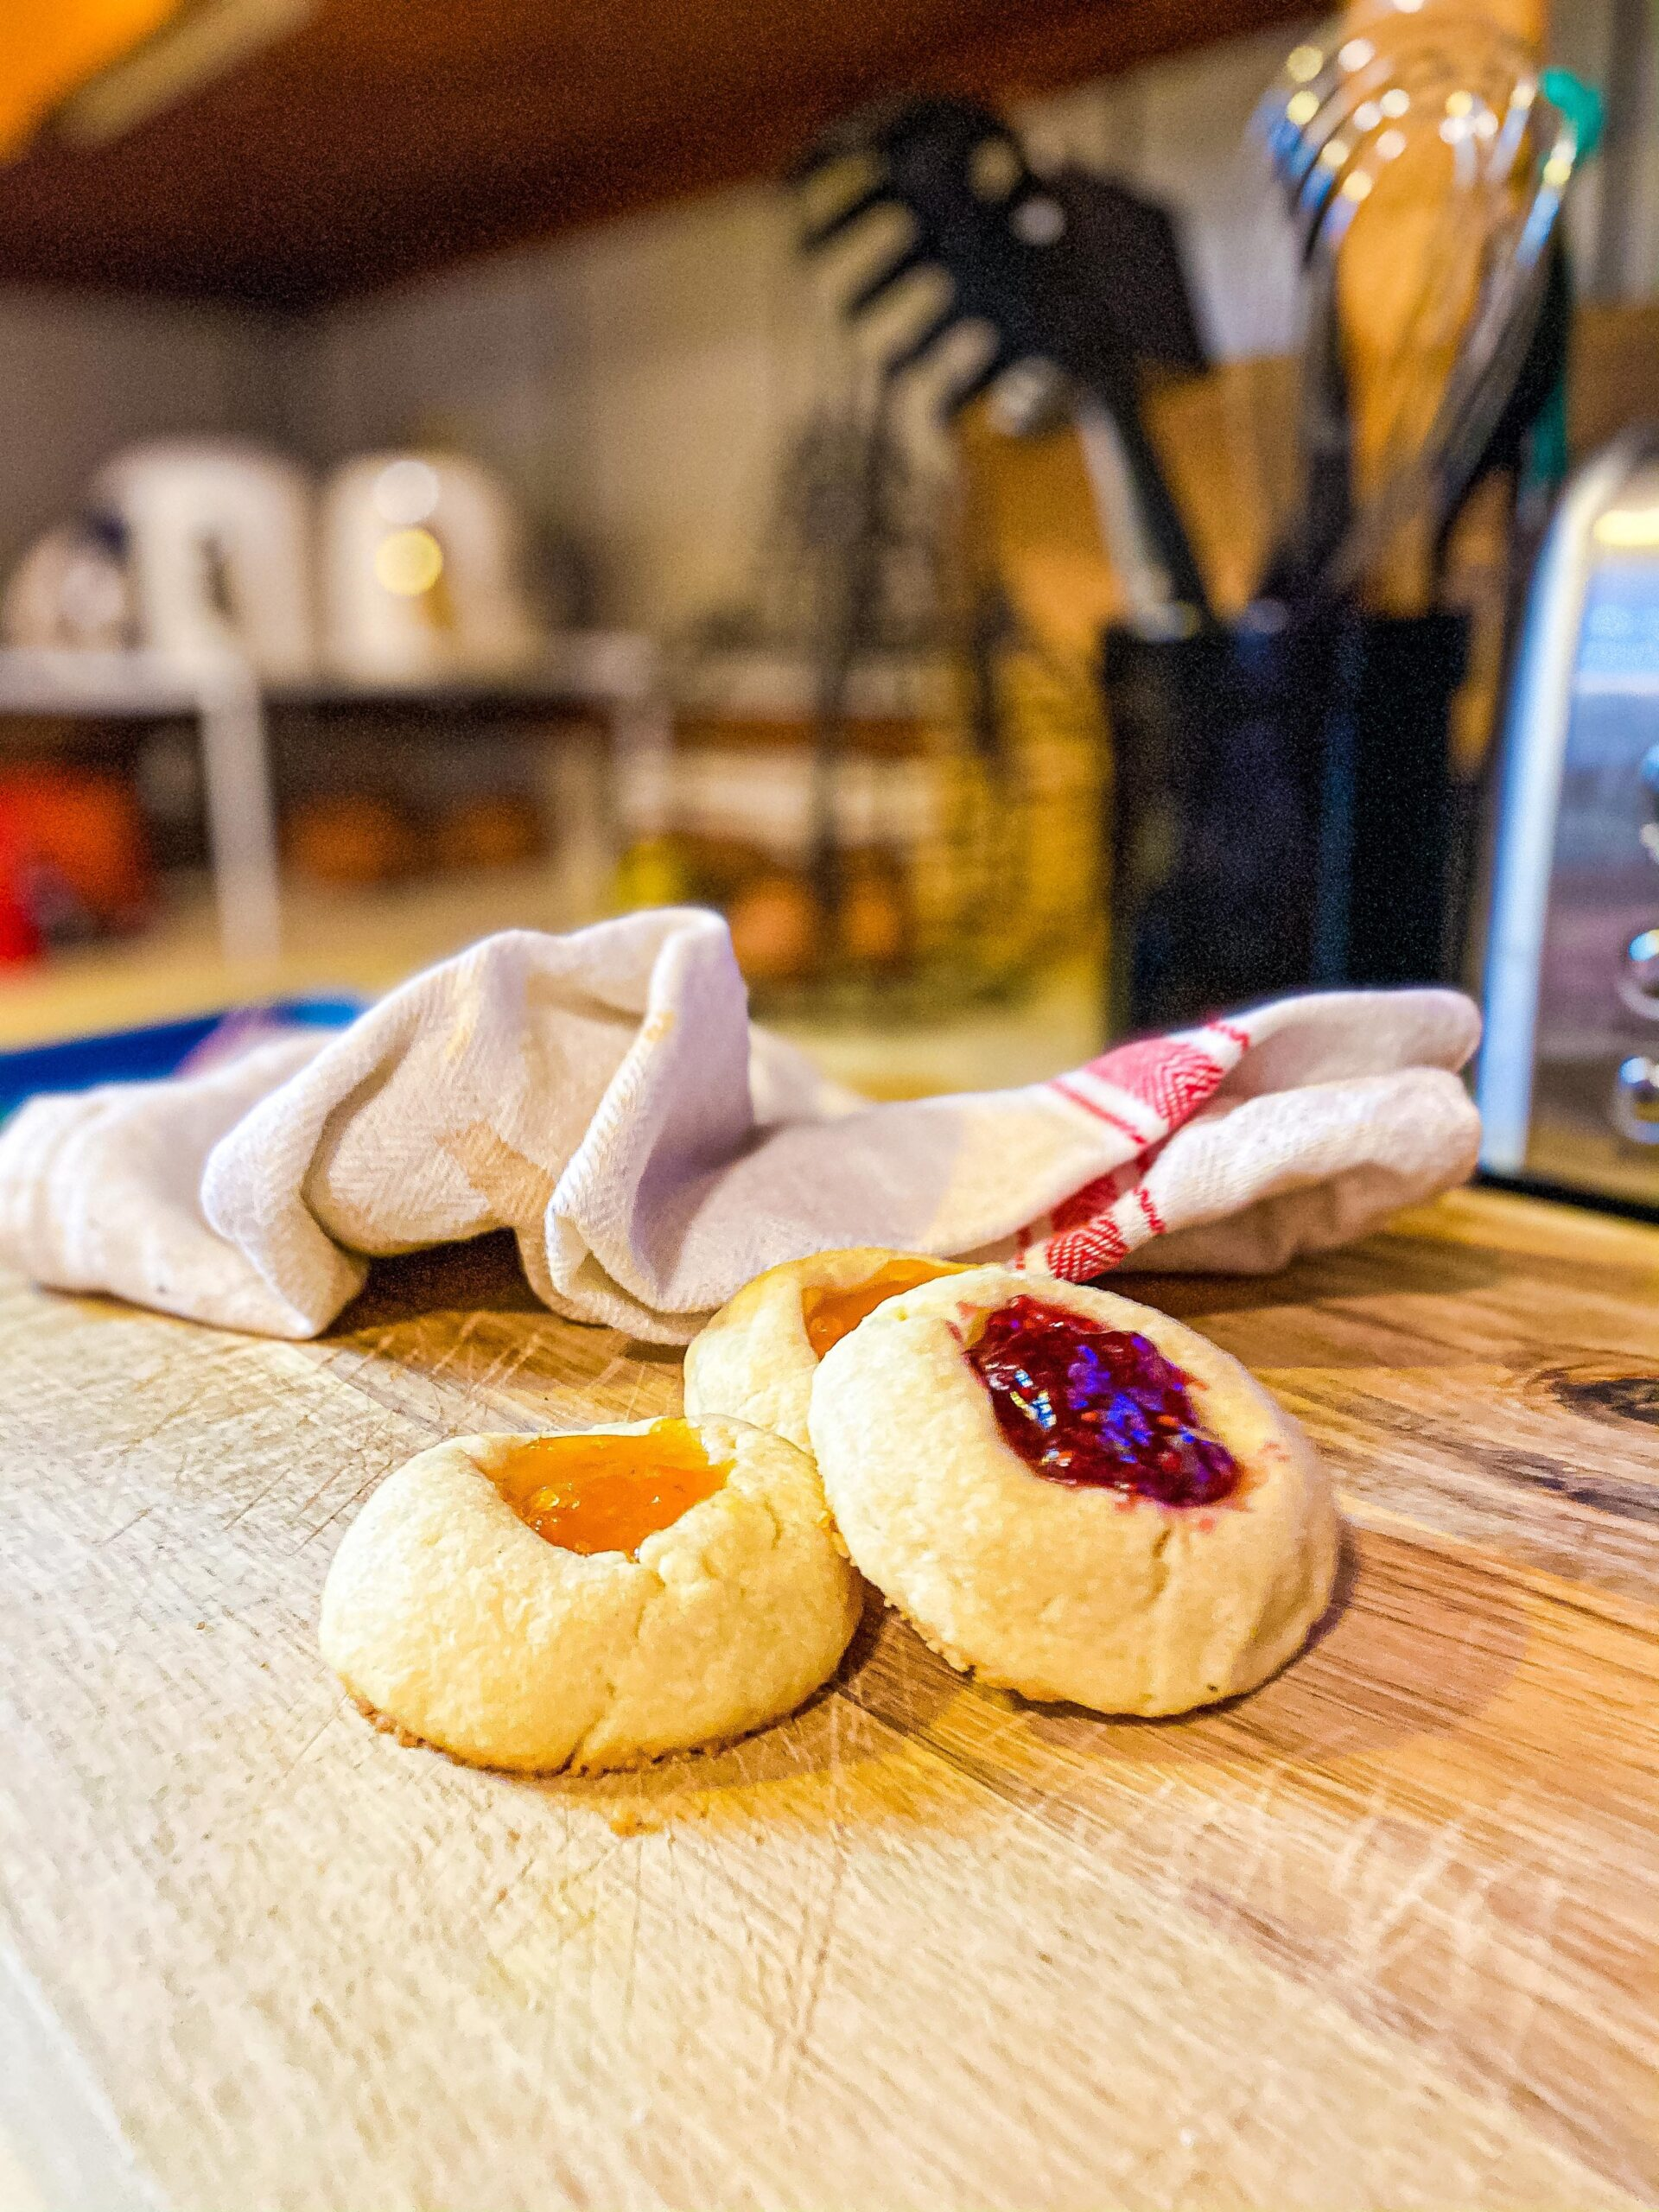 Thumbprint Cookies on a wooden cutting board in the kitchen with a hand towel